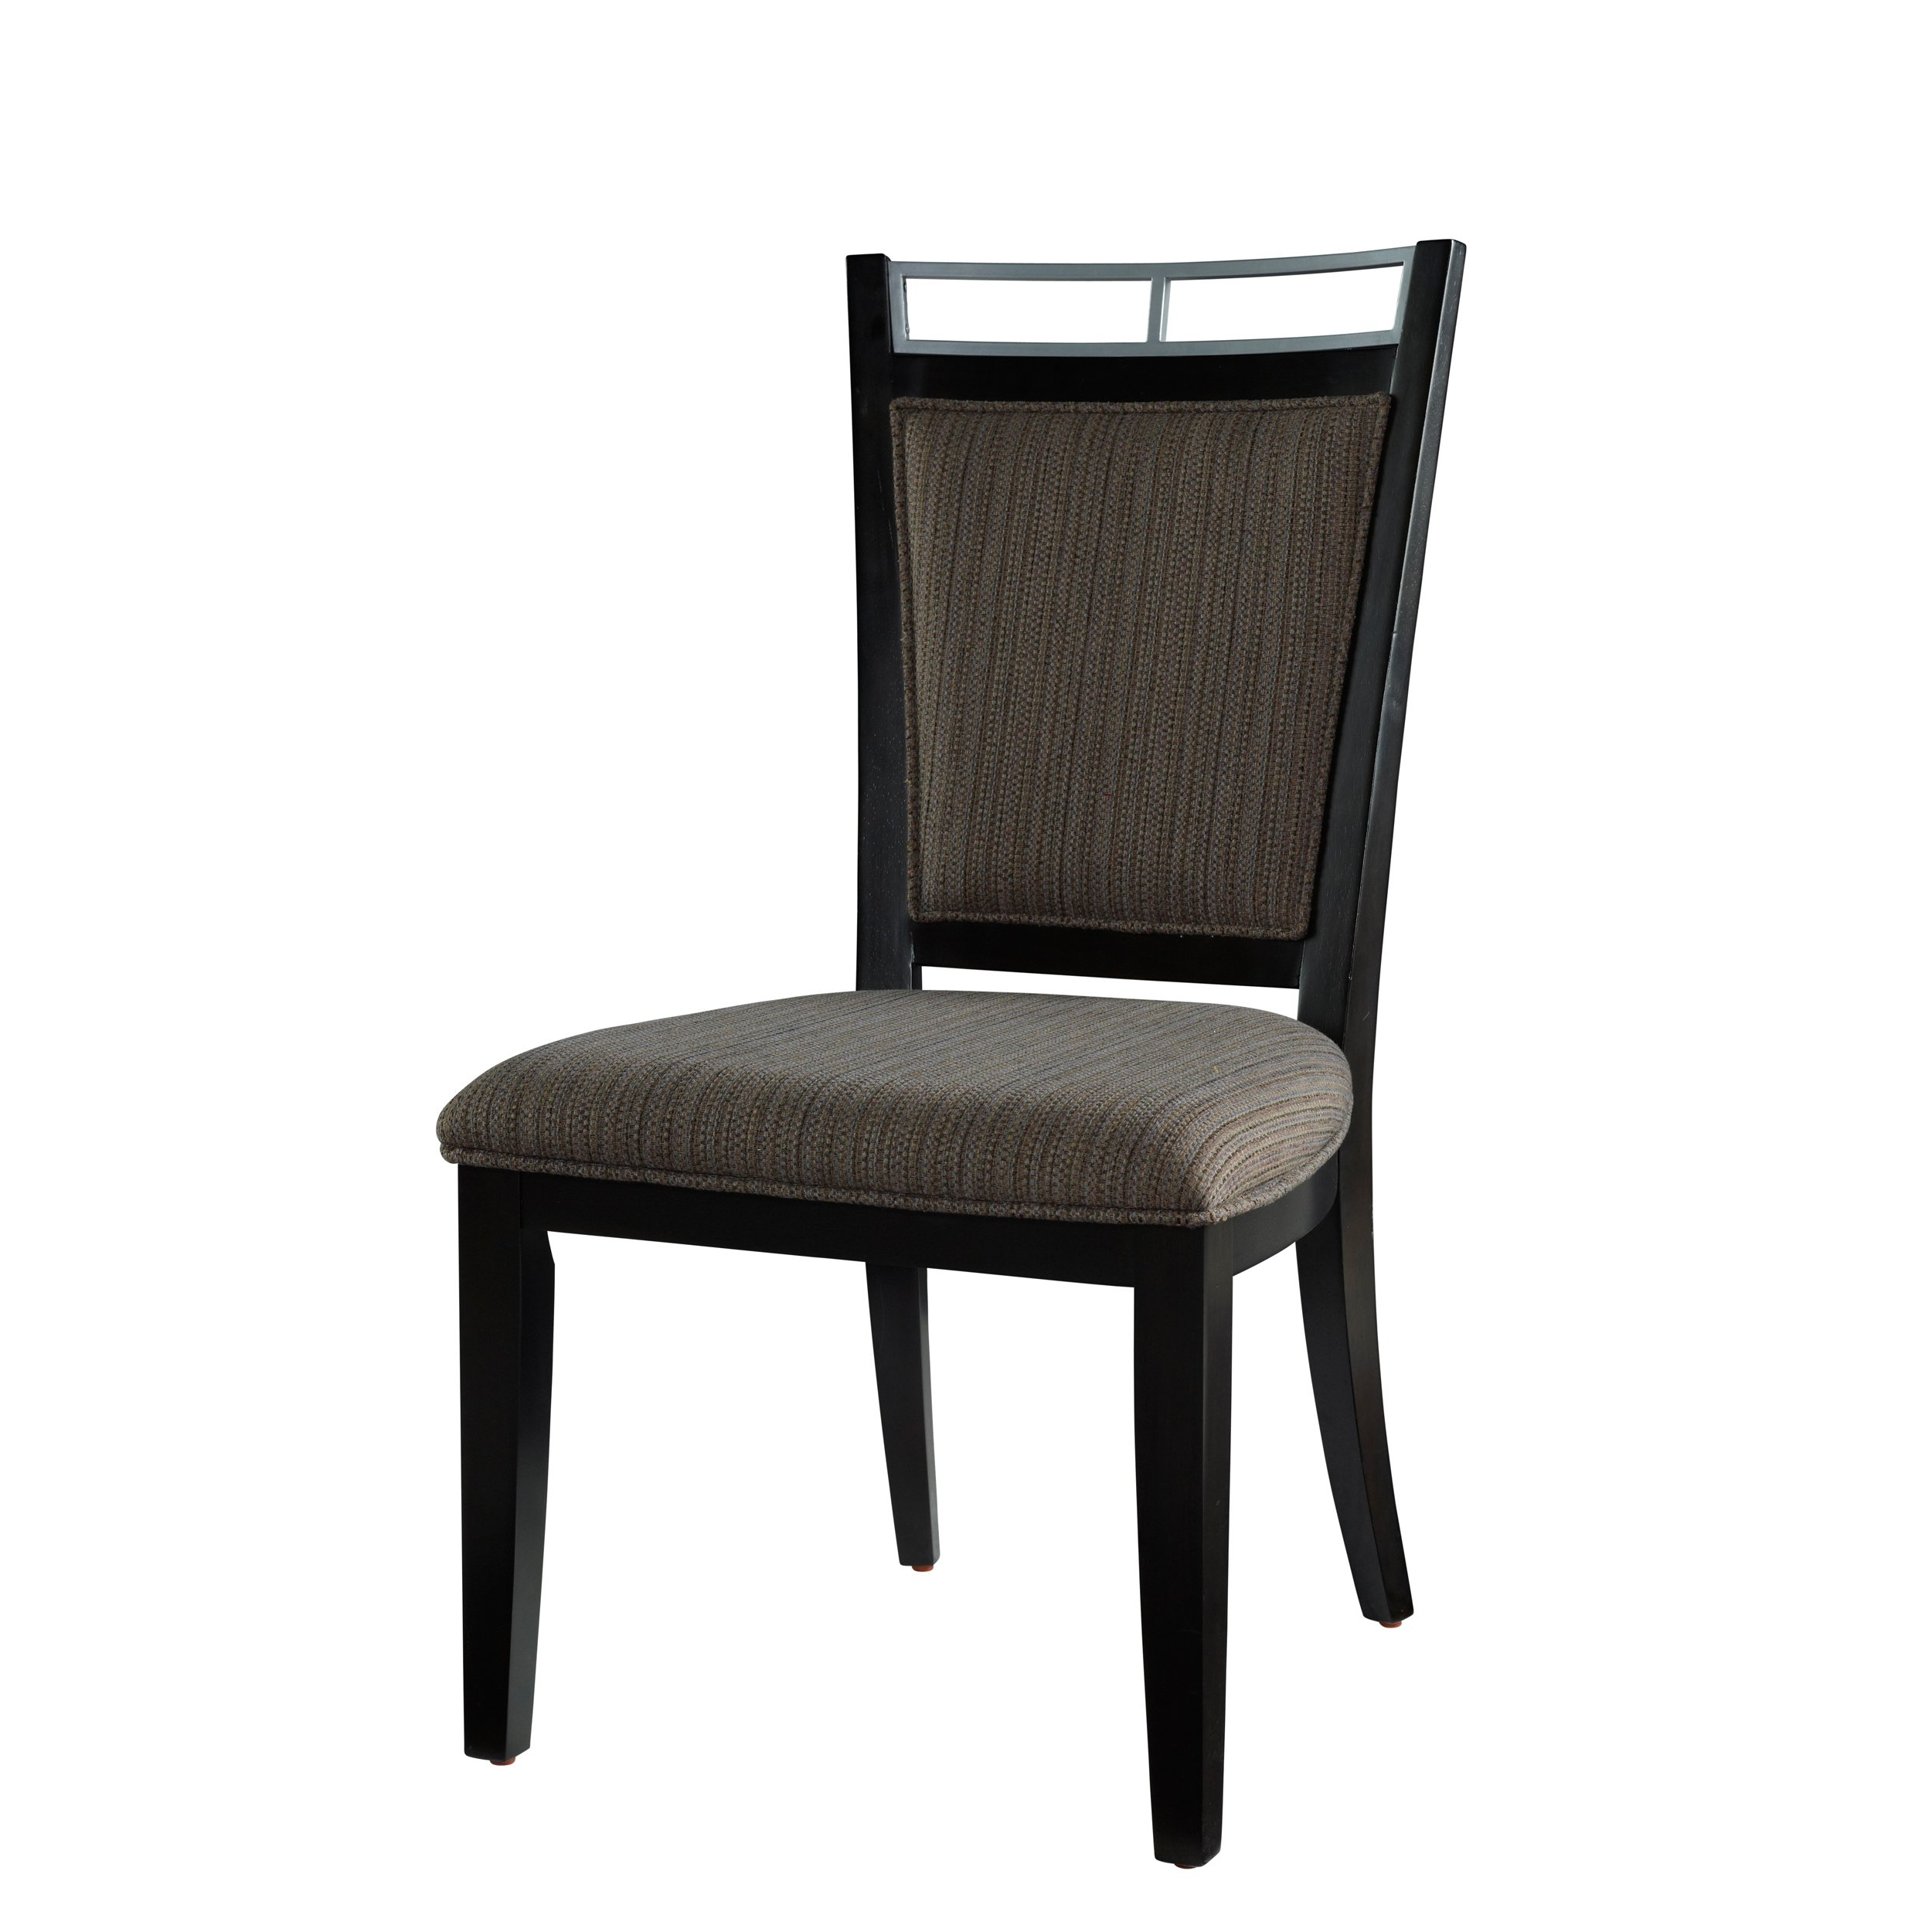 Most Recent Shop Caden Dining Chair – Free Shipping Today – Overstock – 14585615 Pertaining To Caden Round Dining Tables (View 19 of 25)